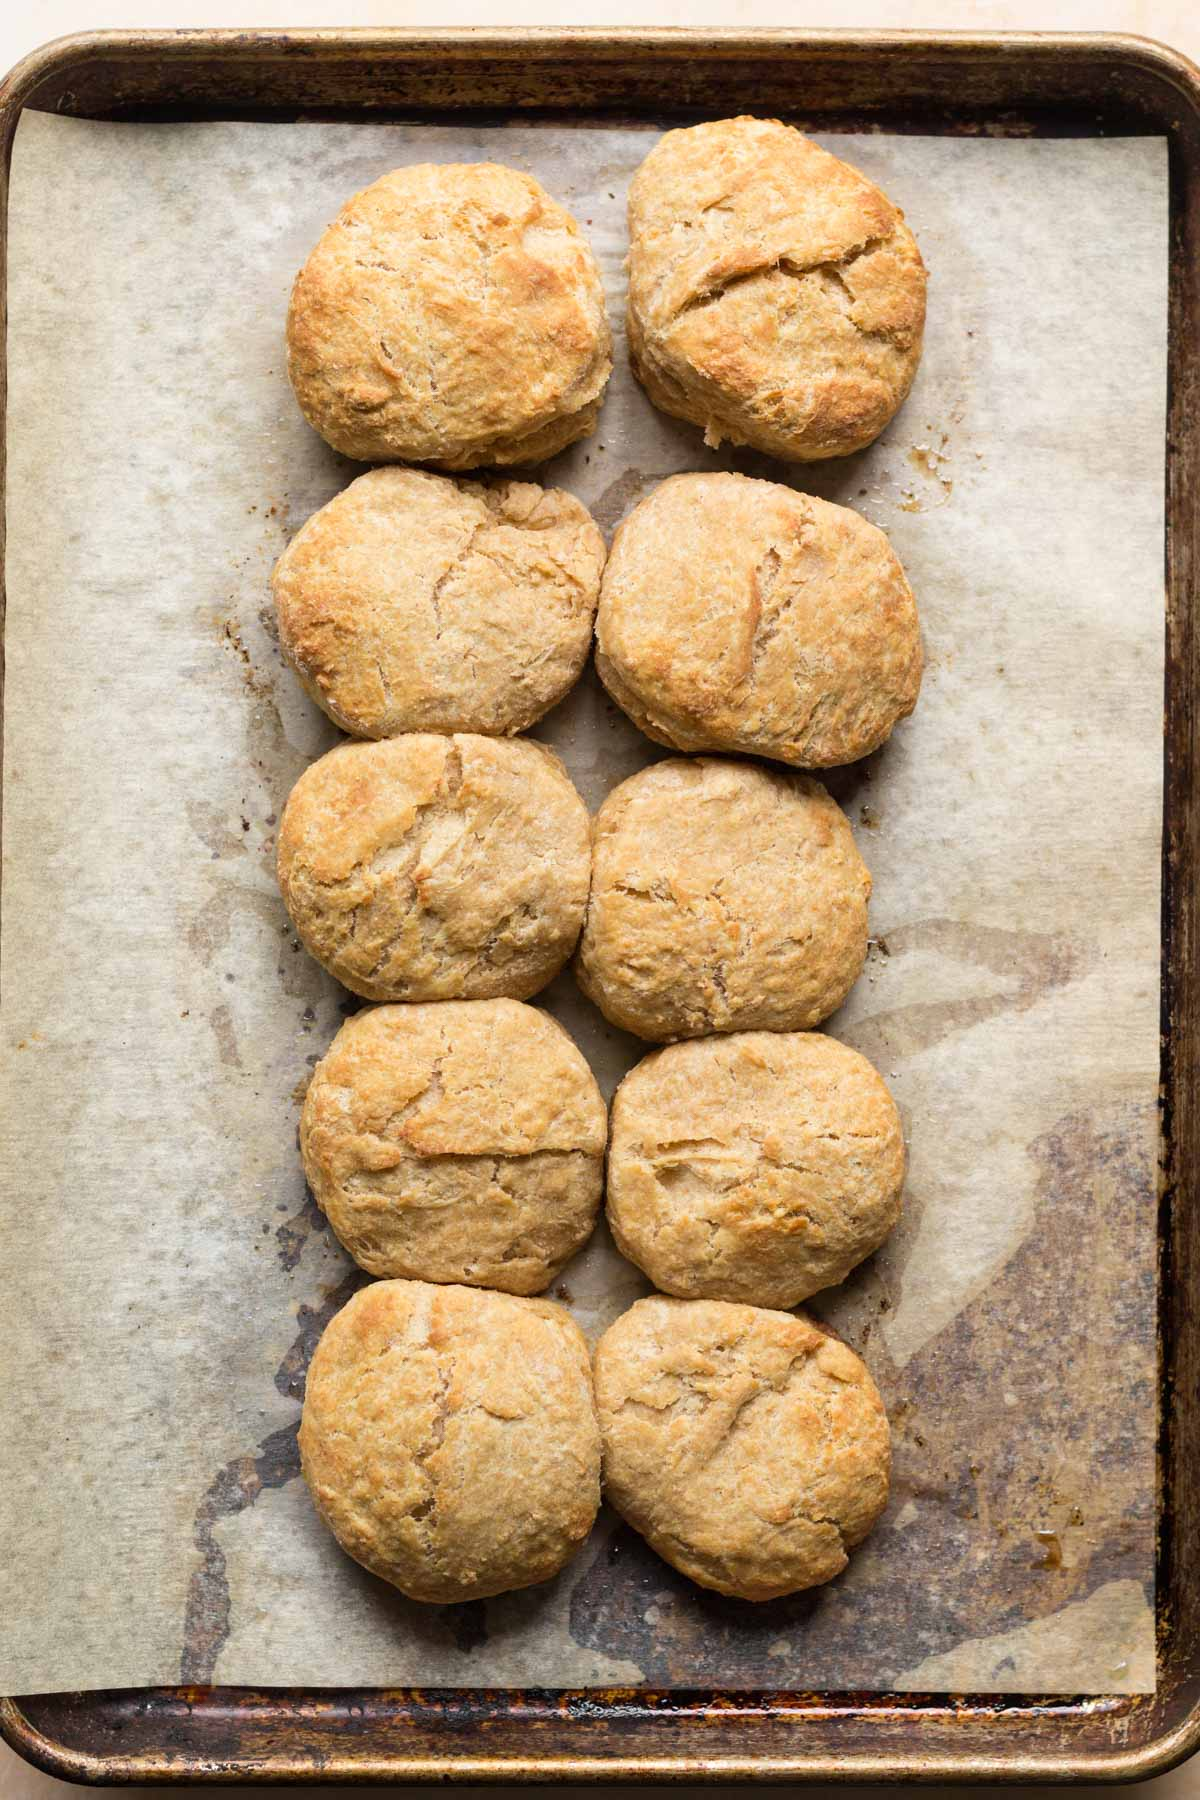 Sourdough discard biscuits baked on sheet pan